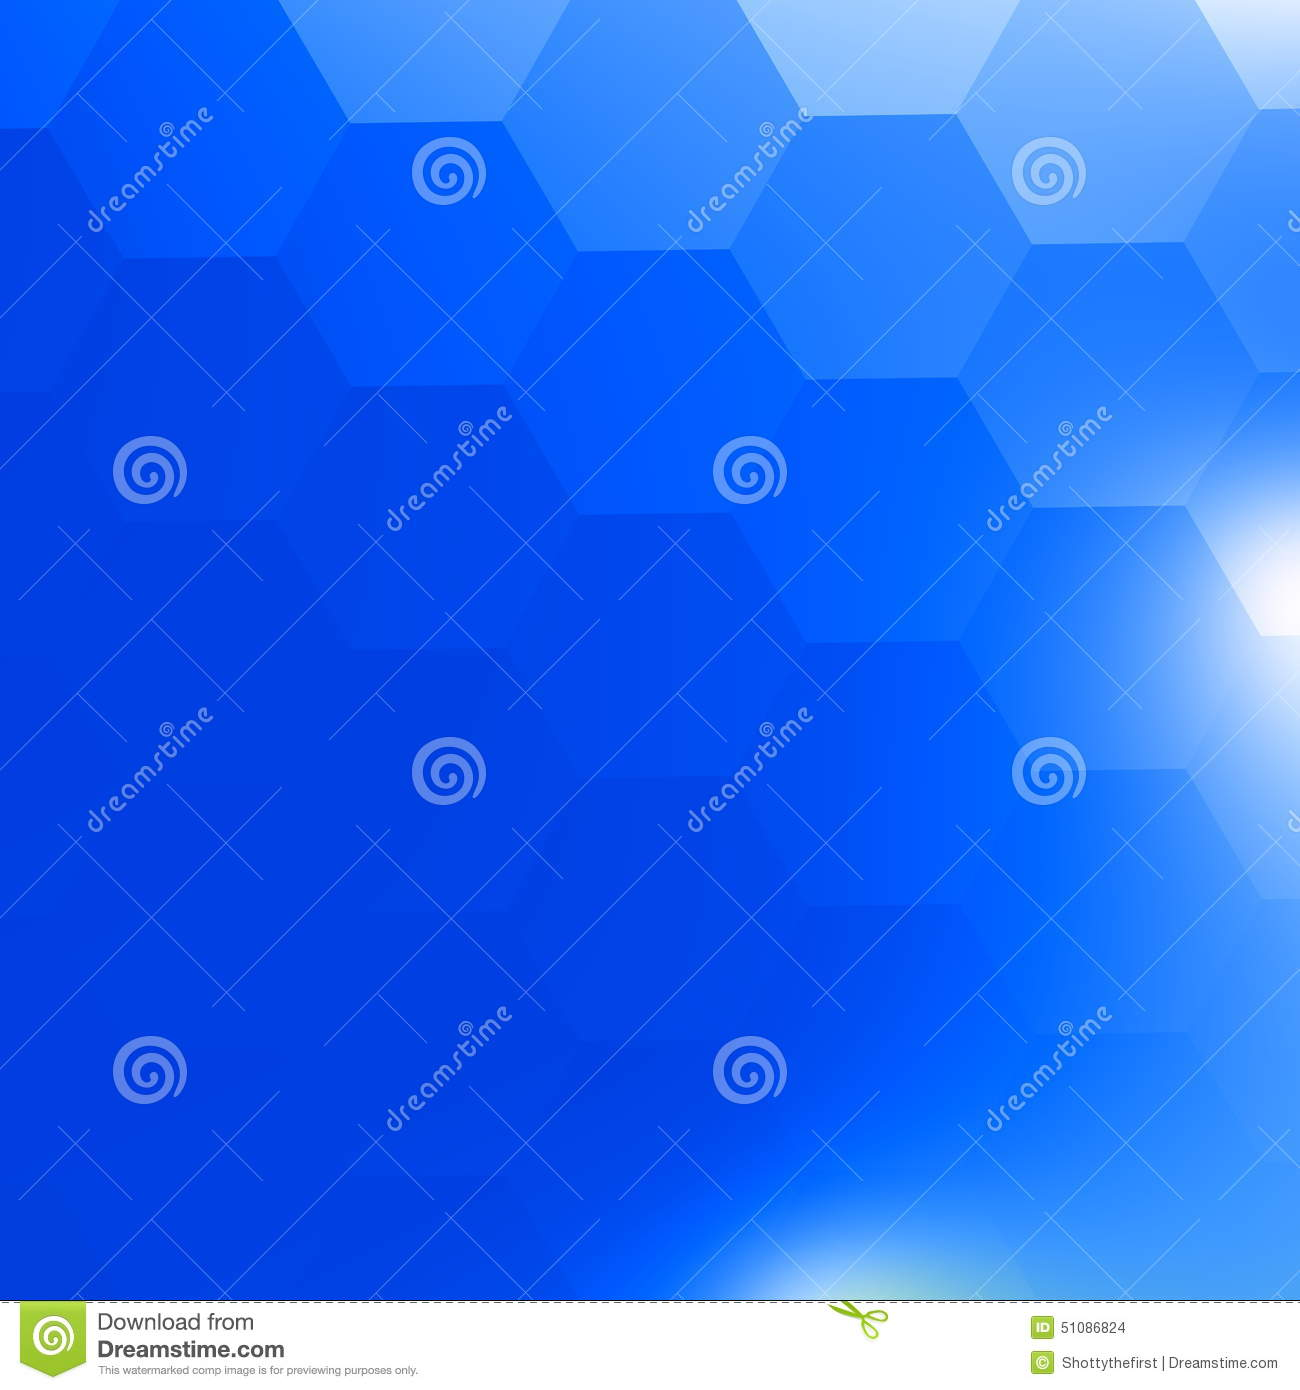 Simple Blue Geometric Background White Light Backdrop For Brochure Ad Website Internet Banner Or Digital Tablet For Cover